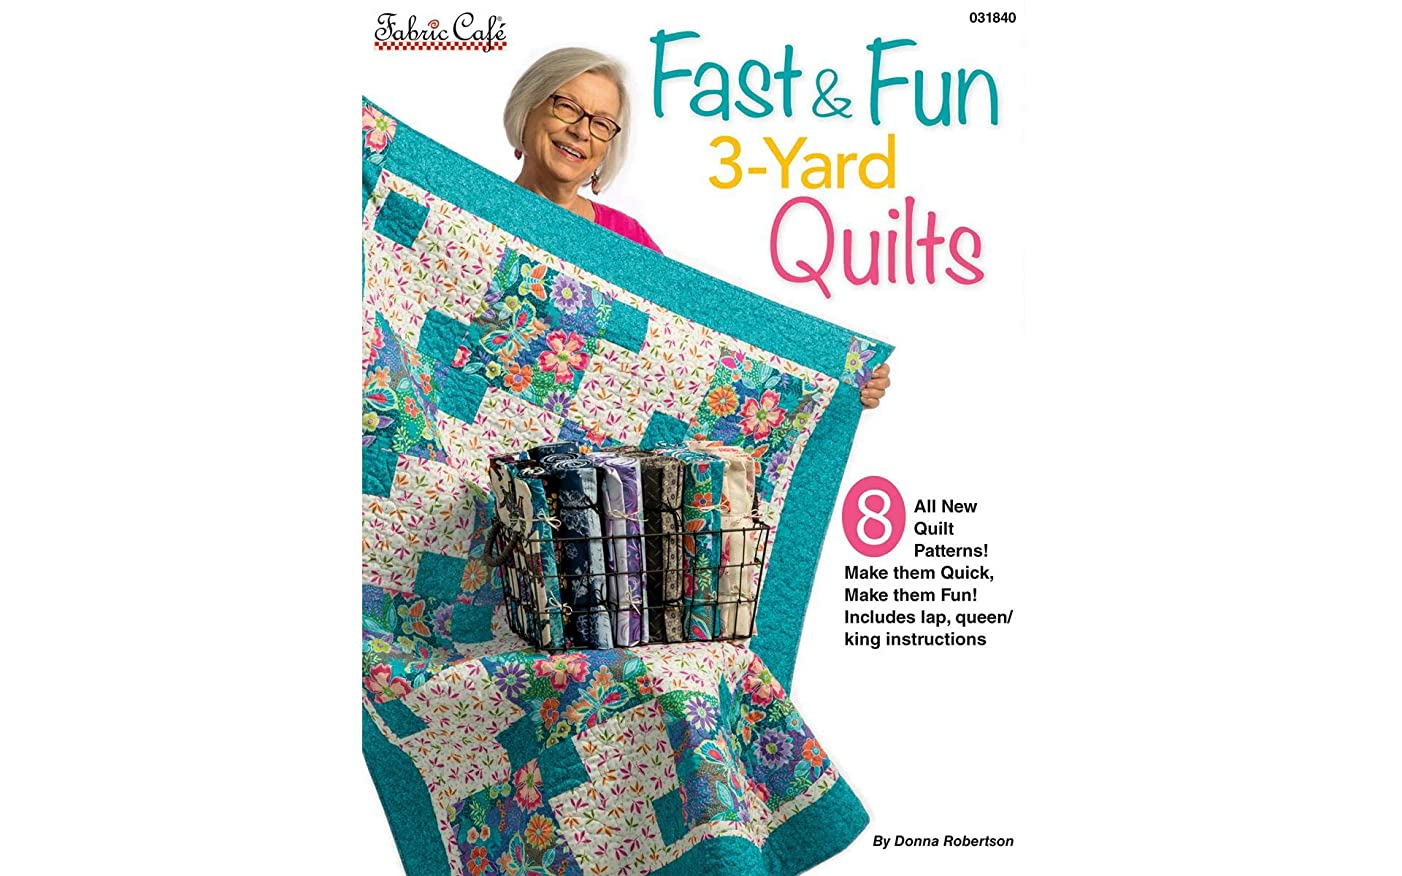 Fabric Cafe 31840 Fast & Fun 3-Yard Quilts None